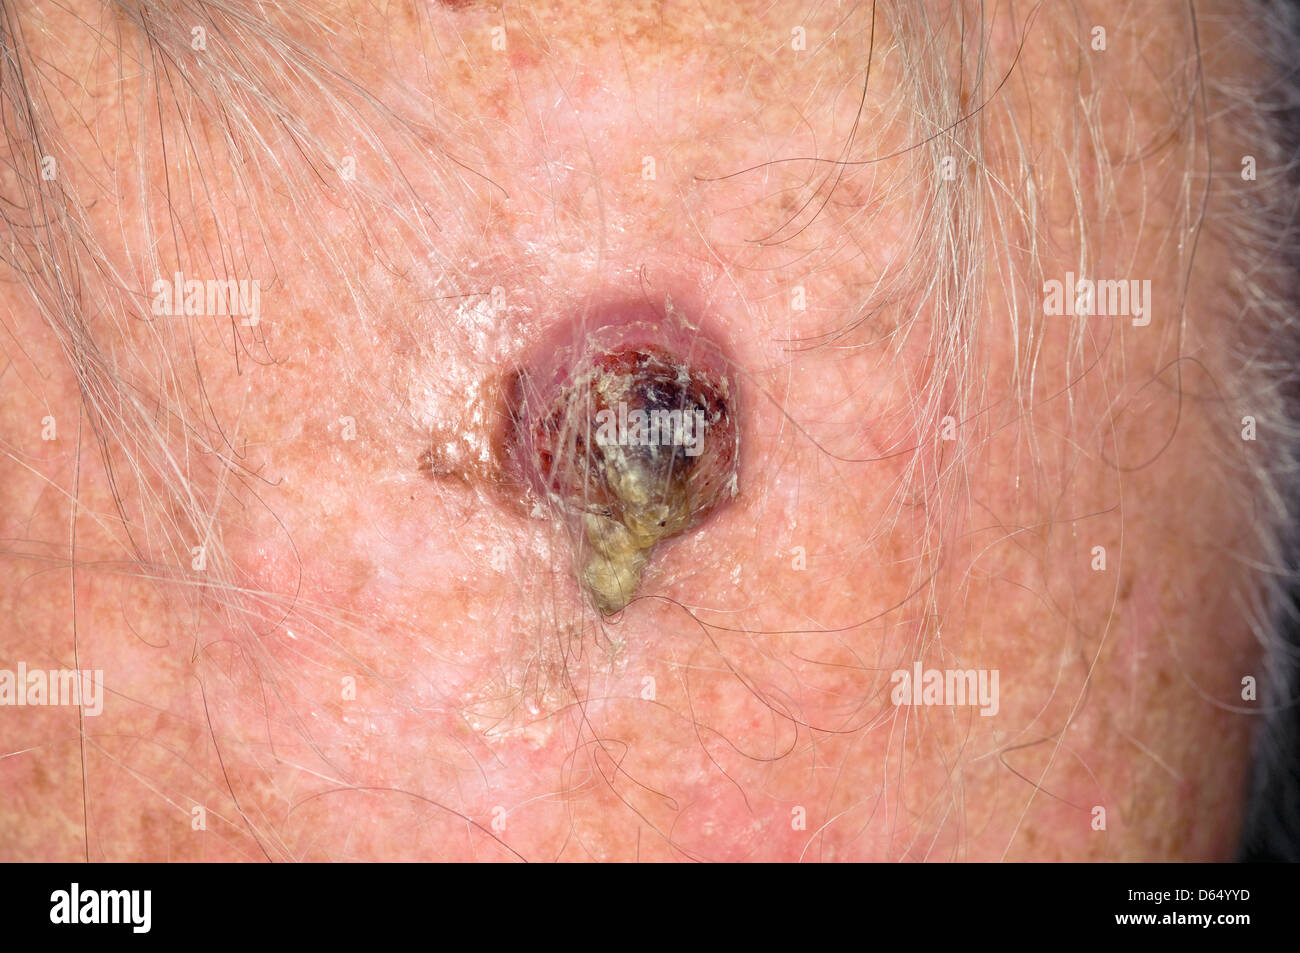 squamous cell carcinoma scalp stock photos amp squamous cell